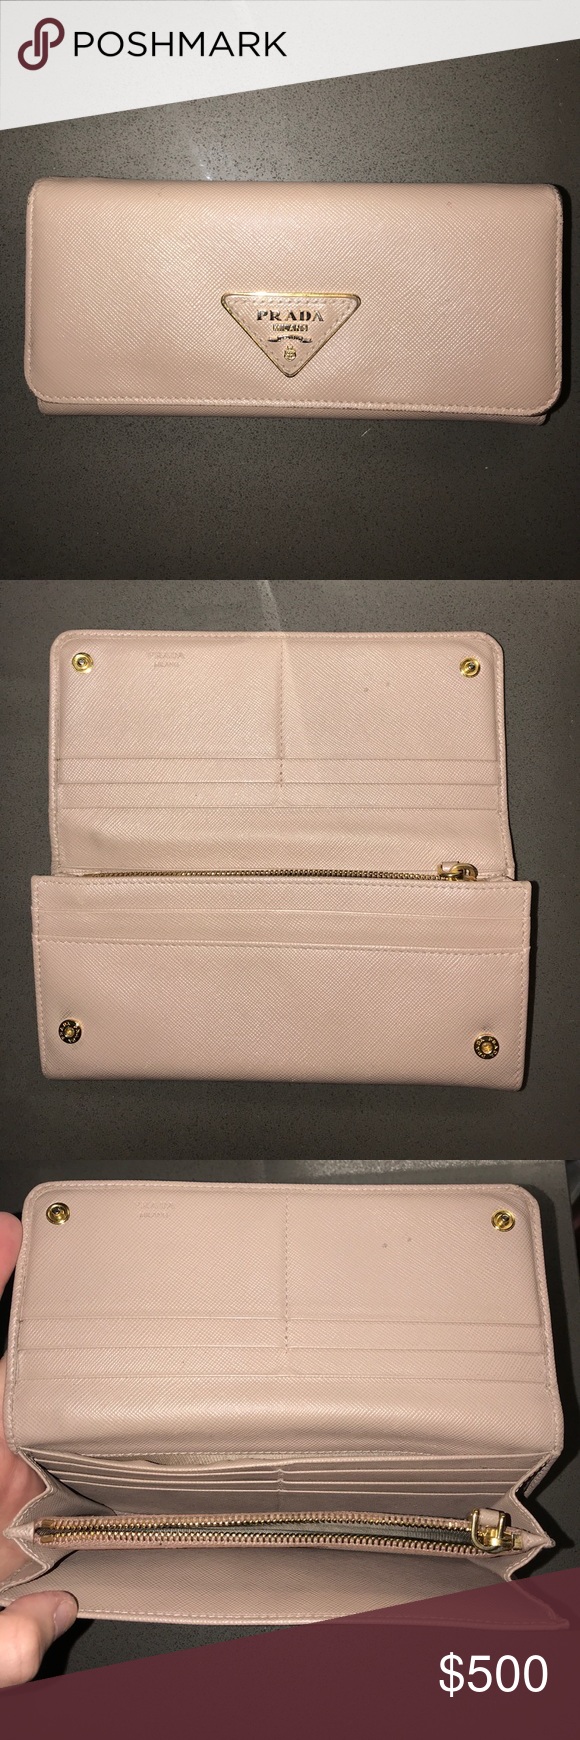 1589f962e25304 AUTHENTIC Prada Saffiano Triangle Wallet (receipt) Good Condition AUTHENTIC  WITH RECEIPT Prada Wallet.